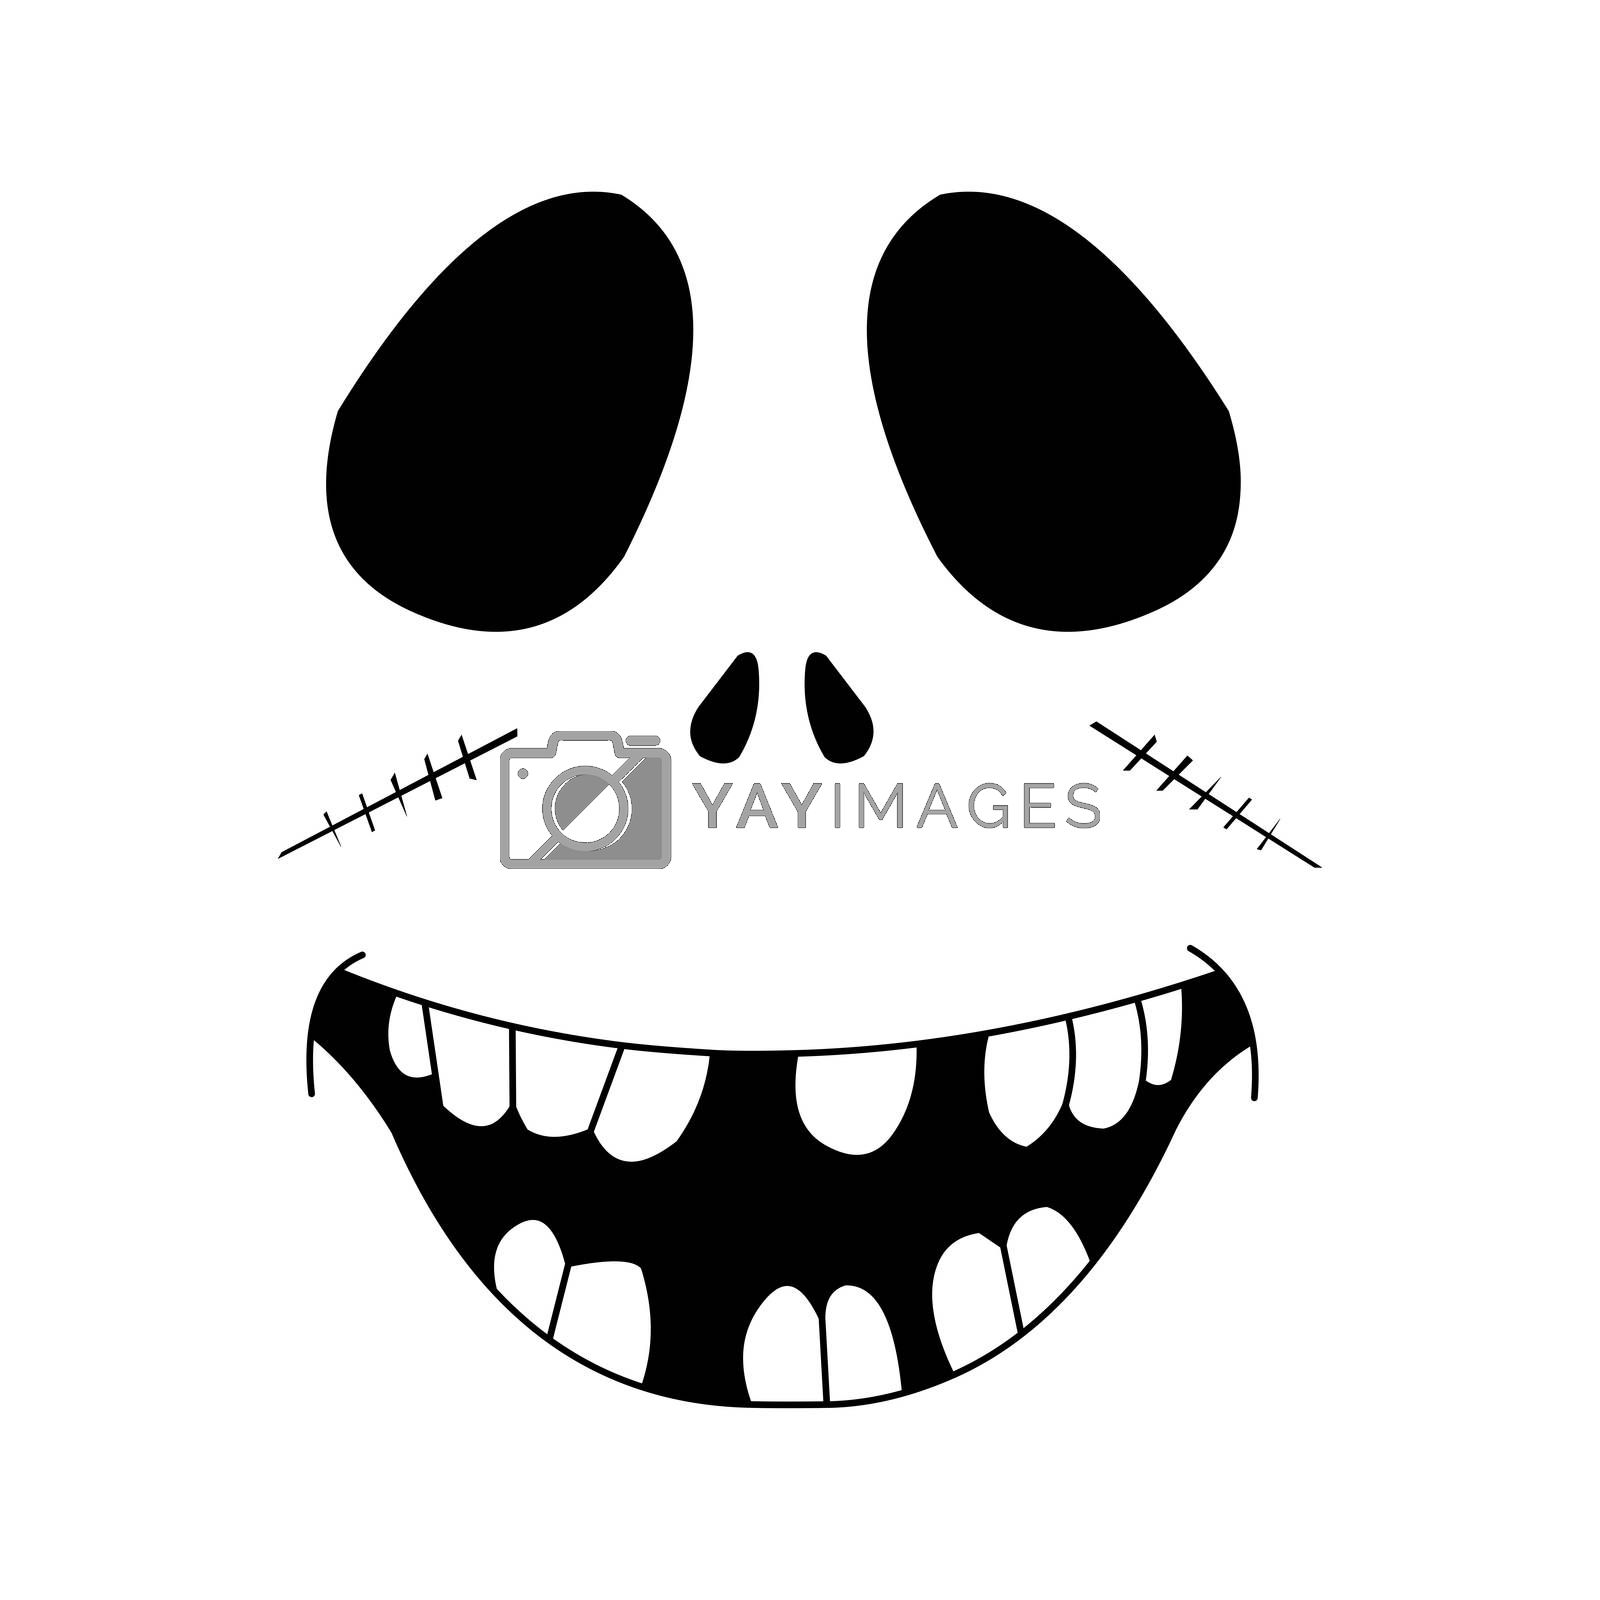 A black and white smiling Halloween zombie face.